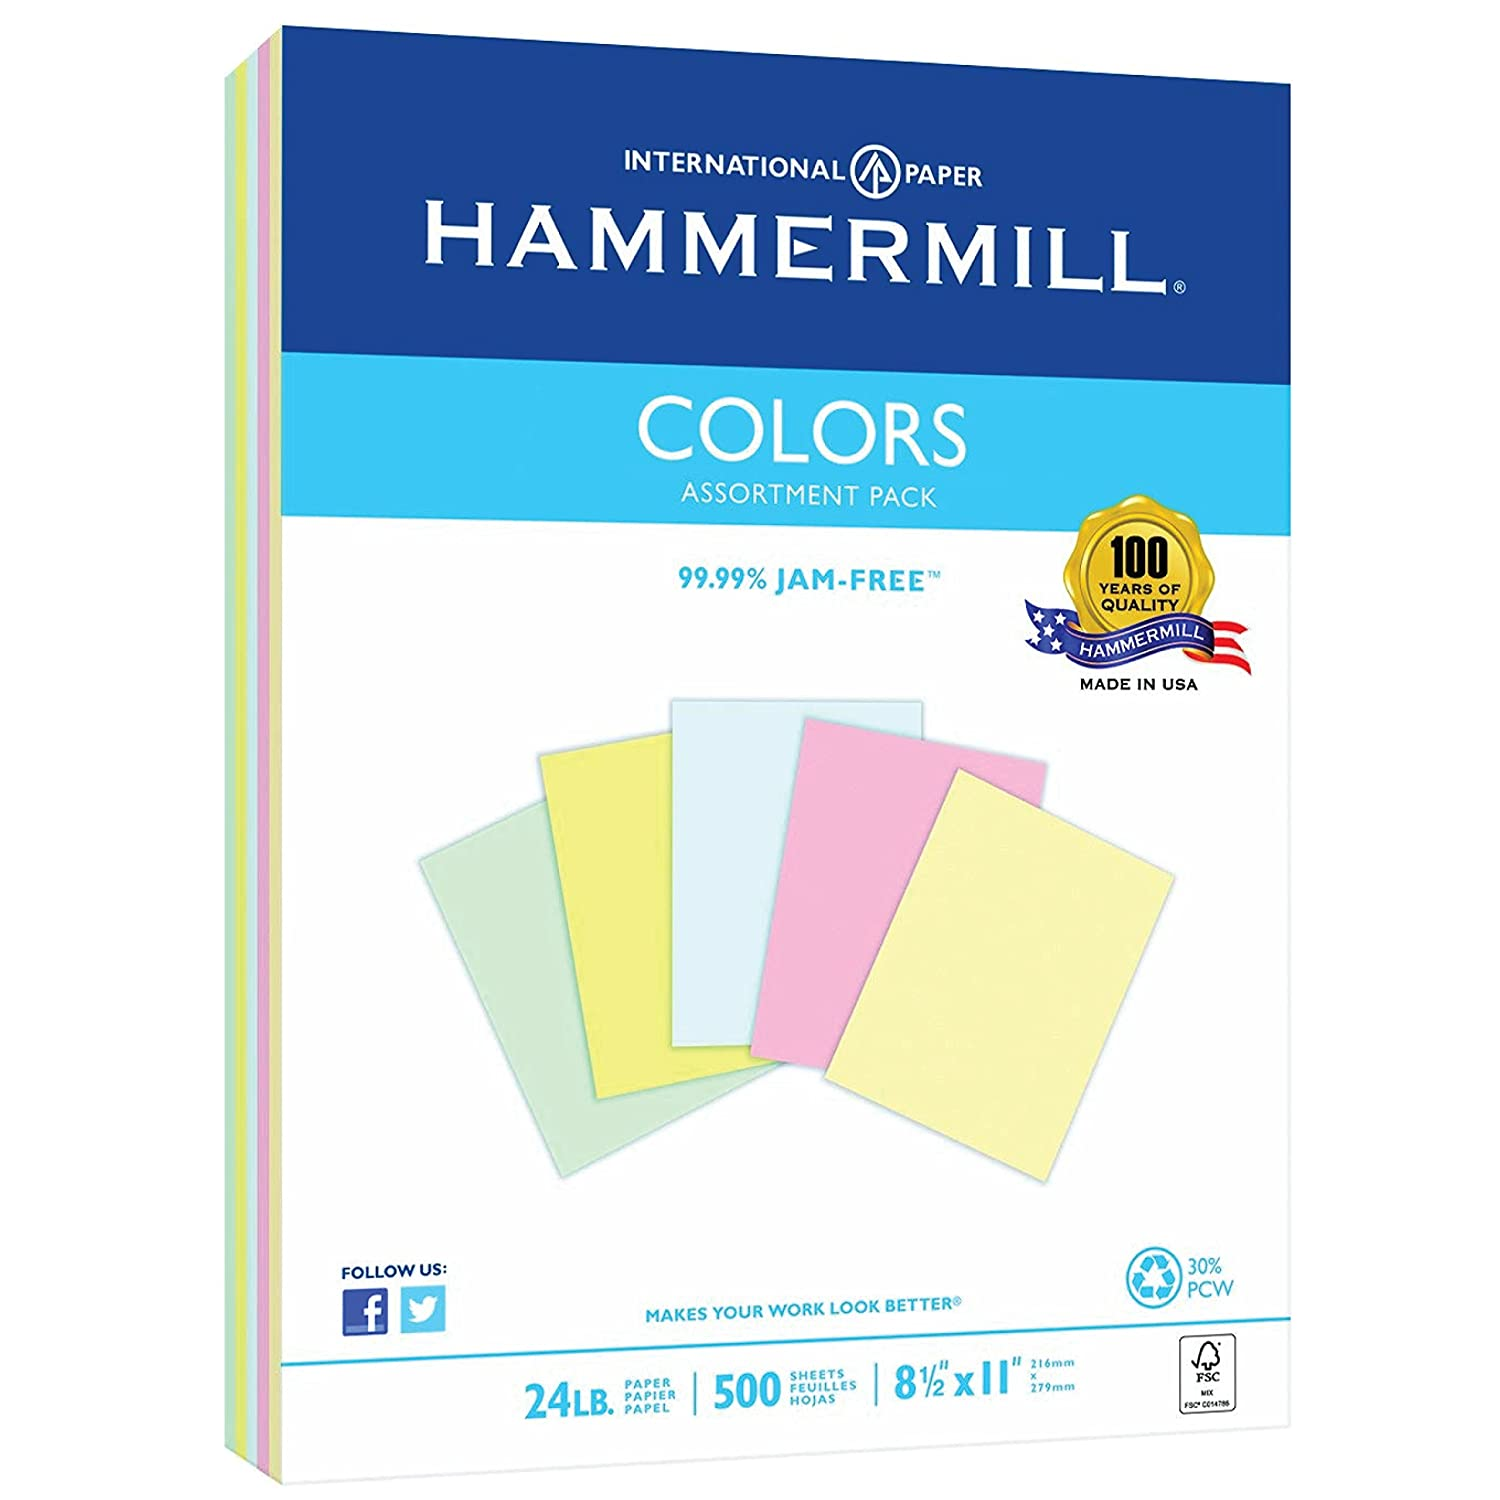 Hammermill Printer Paper, Colors Assorted, Blue, Canary, Pink, Green, Ivory, 24lb, 8.5 x 11, Letter - 1 Pack / 500 Sheets (102640R)